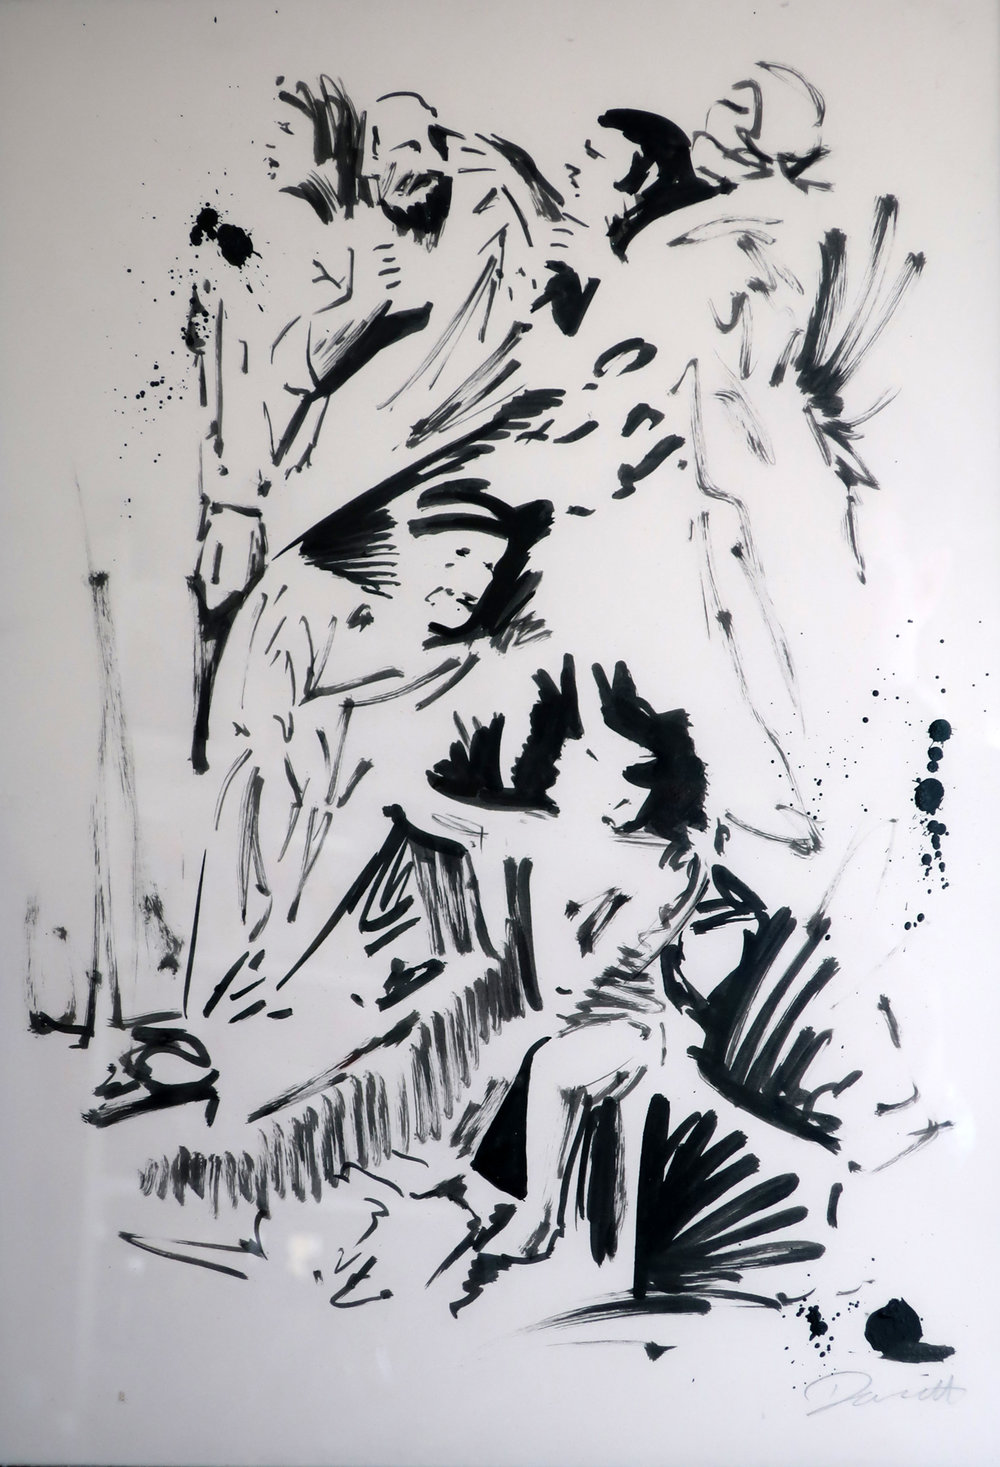 DARREN COFFIELD   Figurative Group  ( after Poussin's Triumph of David ), 2017 India ink on paper, framed 46 x 34 cm  © Darren Coffield, London